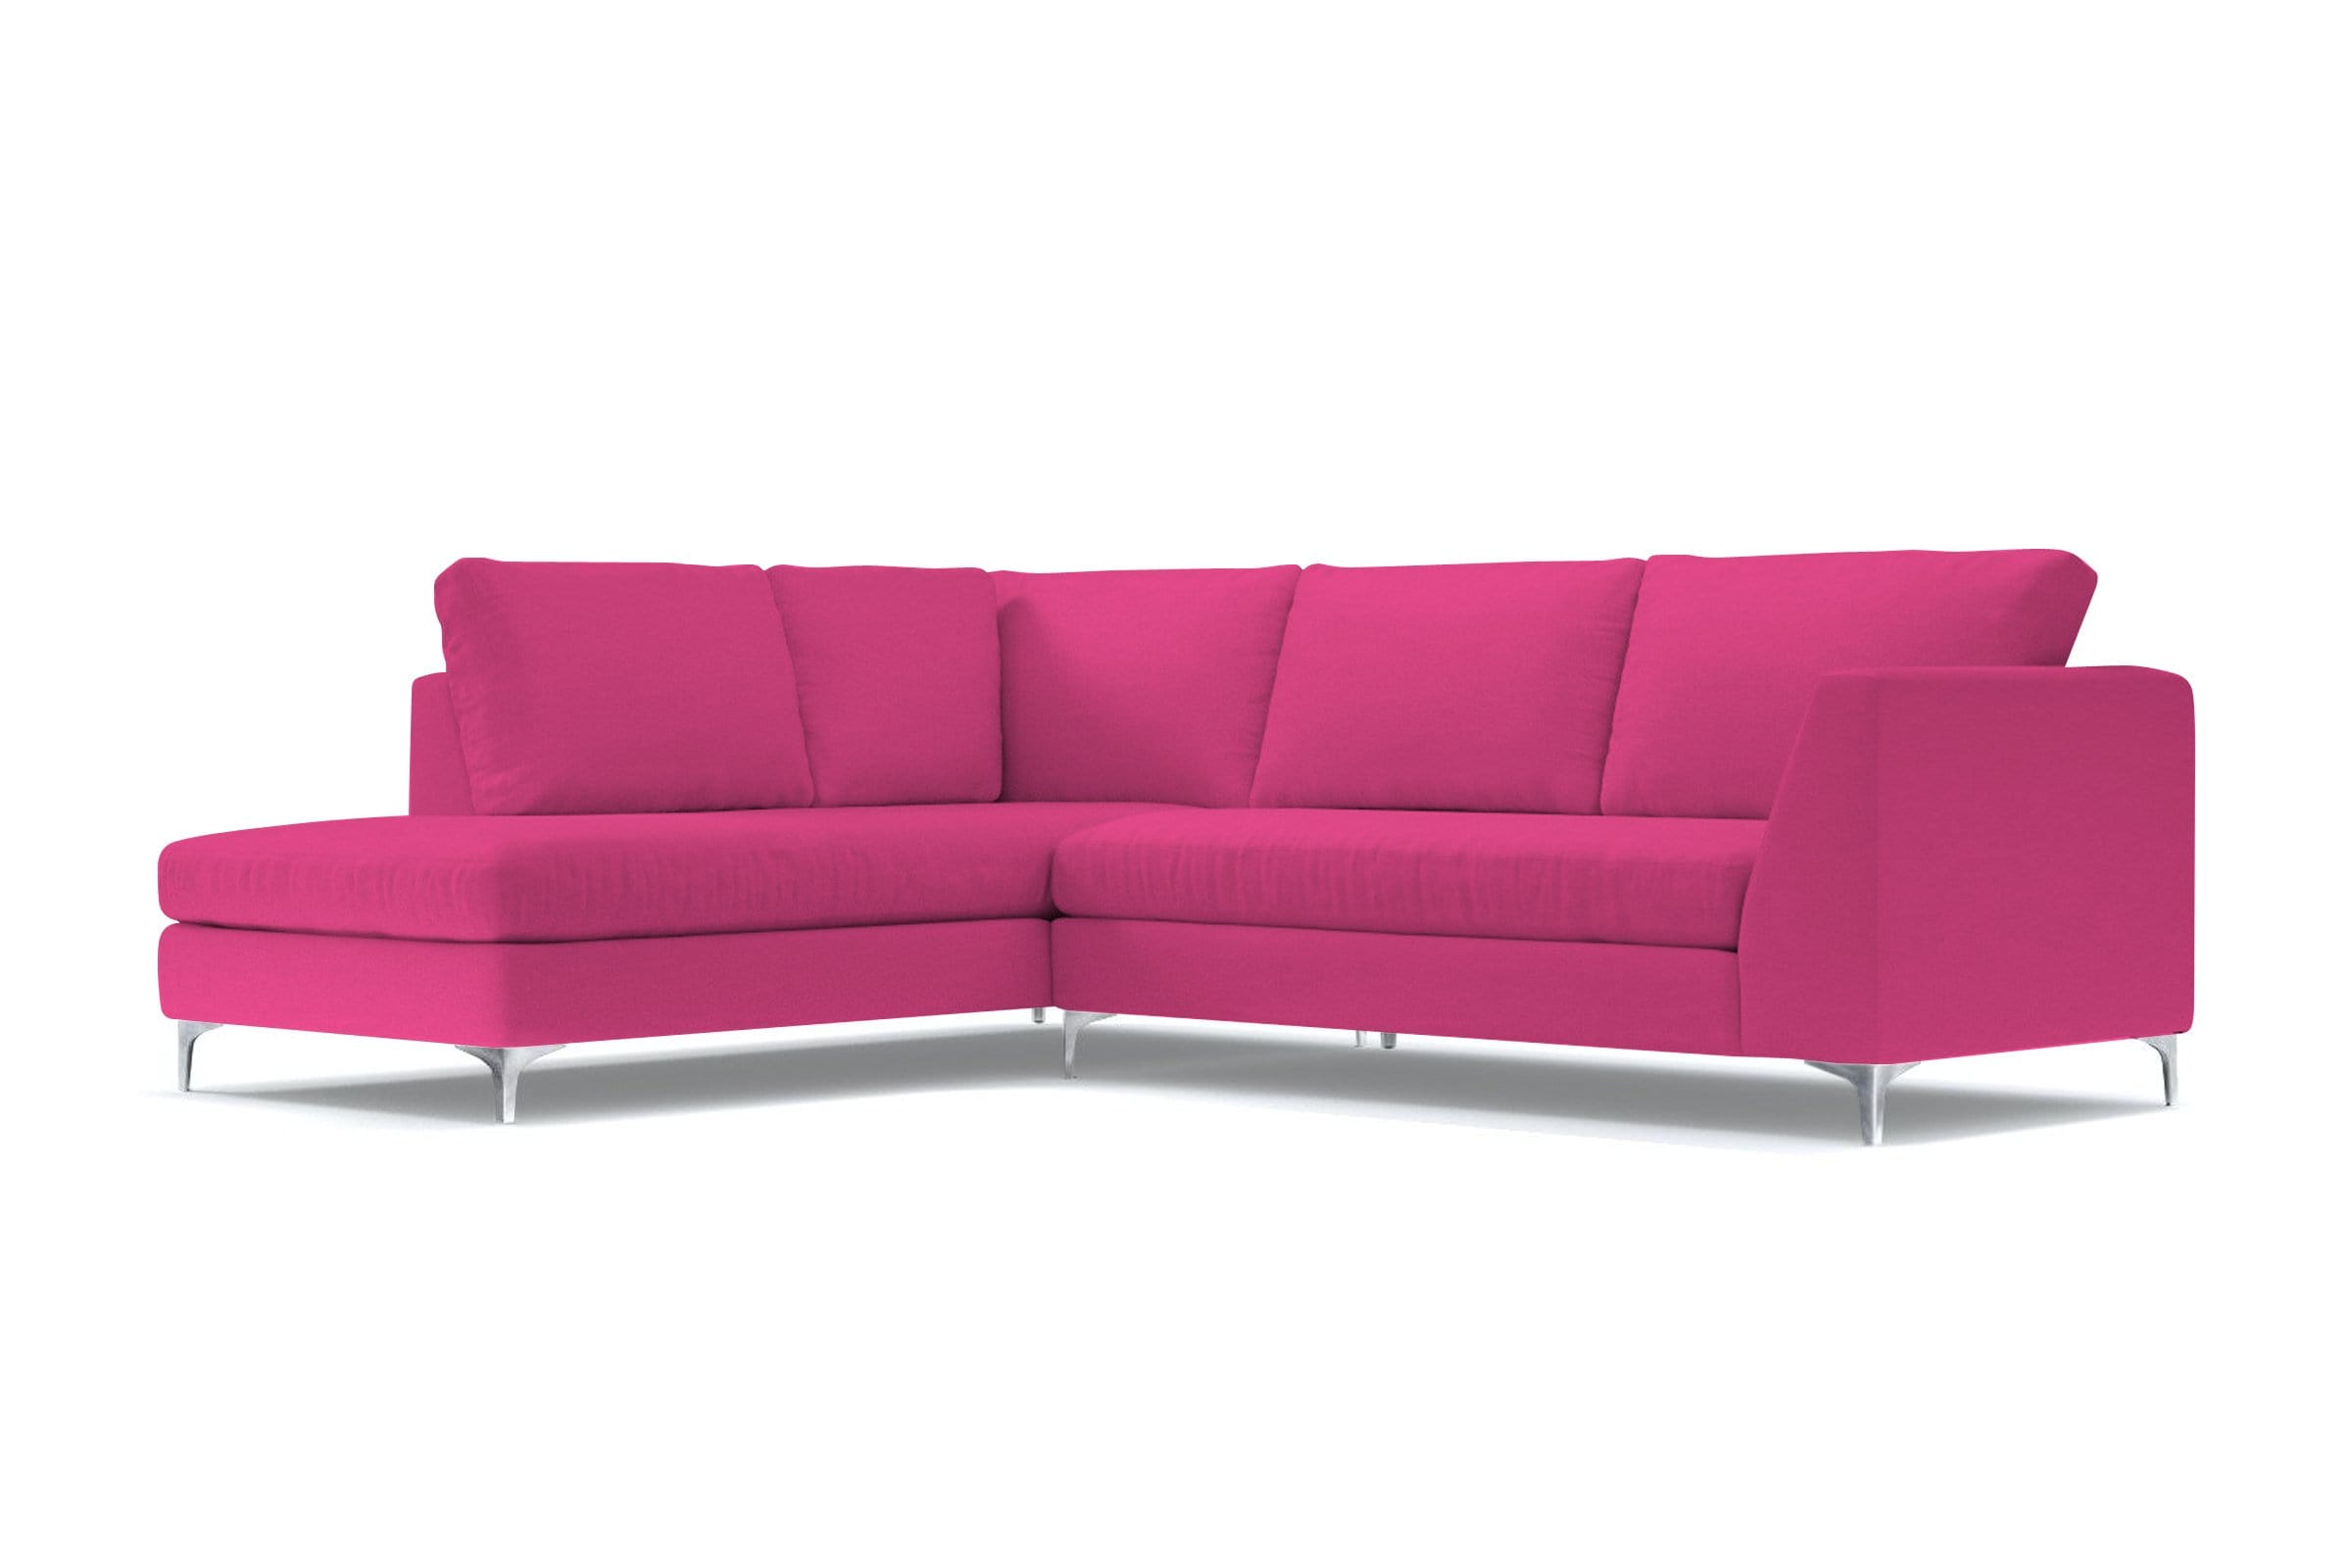 Mulholland 2pc Sectional Sofa - Pink - Modern Sectional Sofa Made in USA - Sold by Apt2B